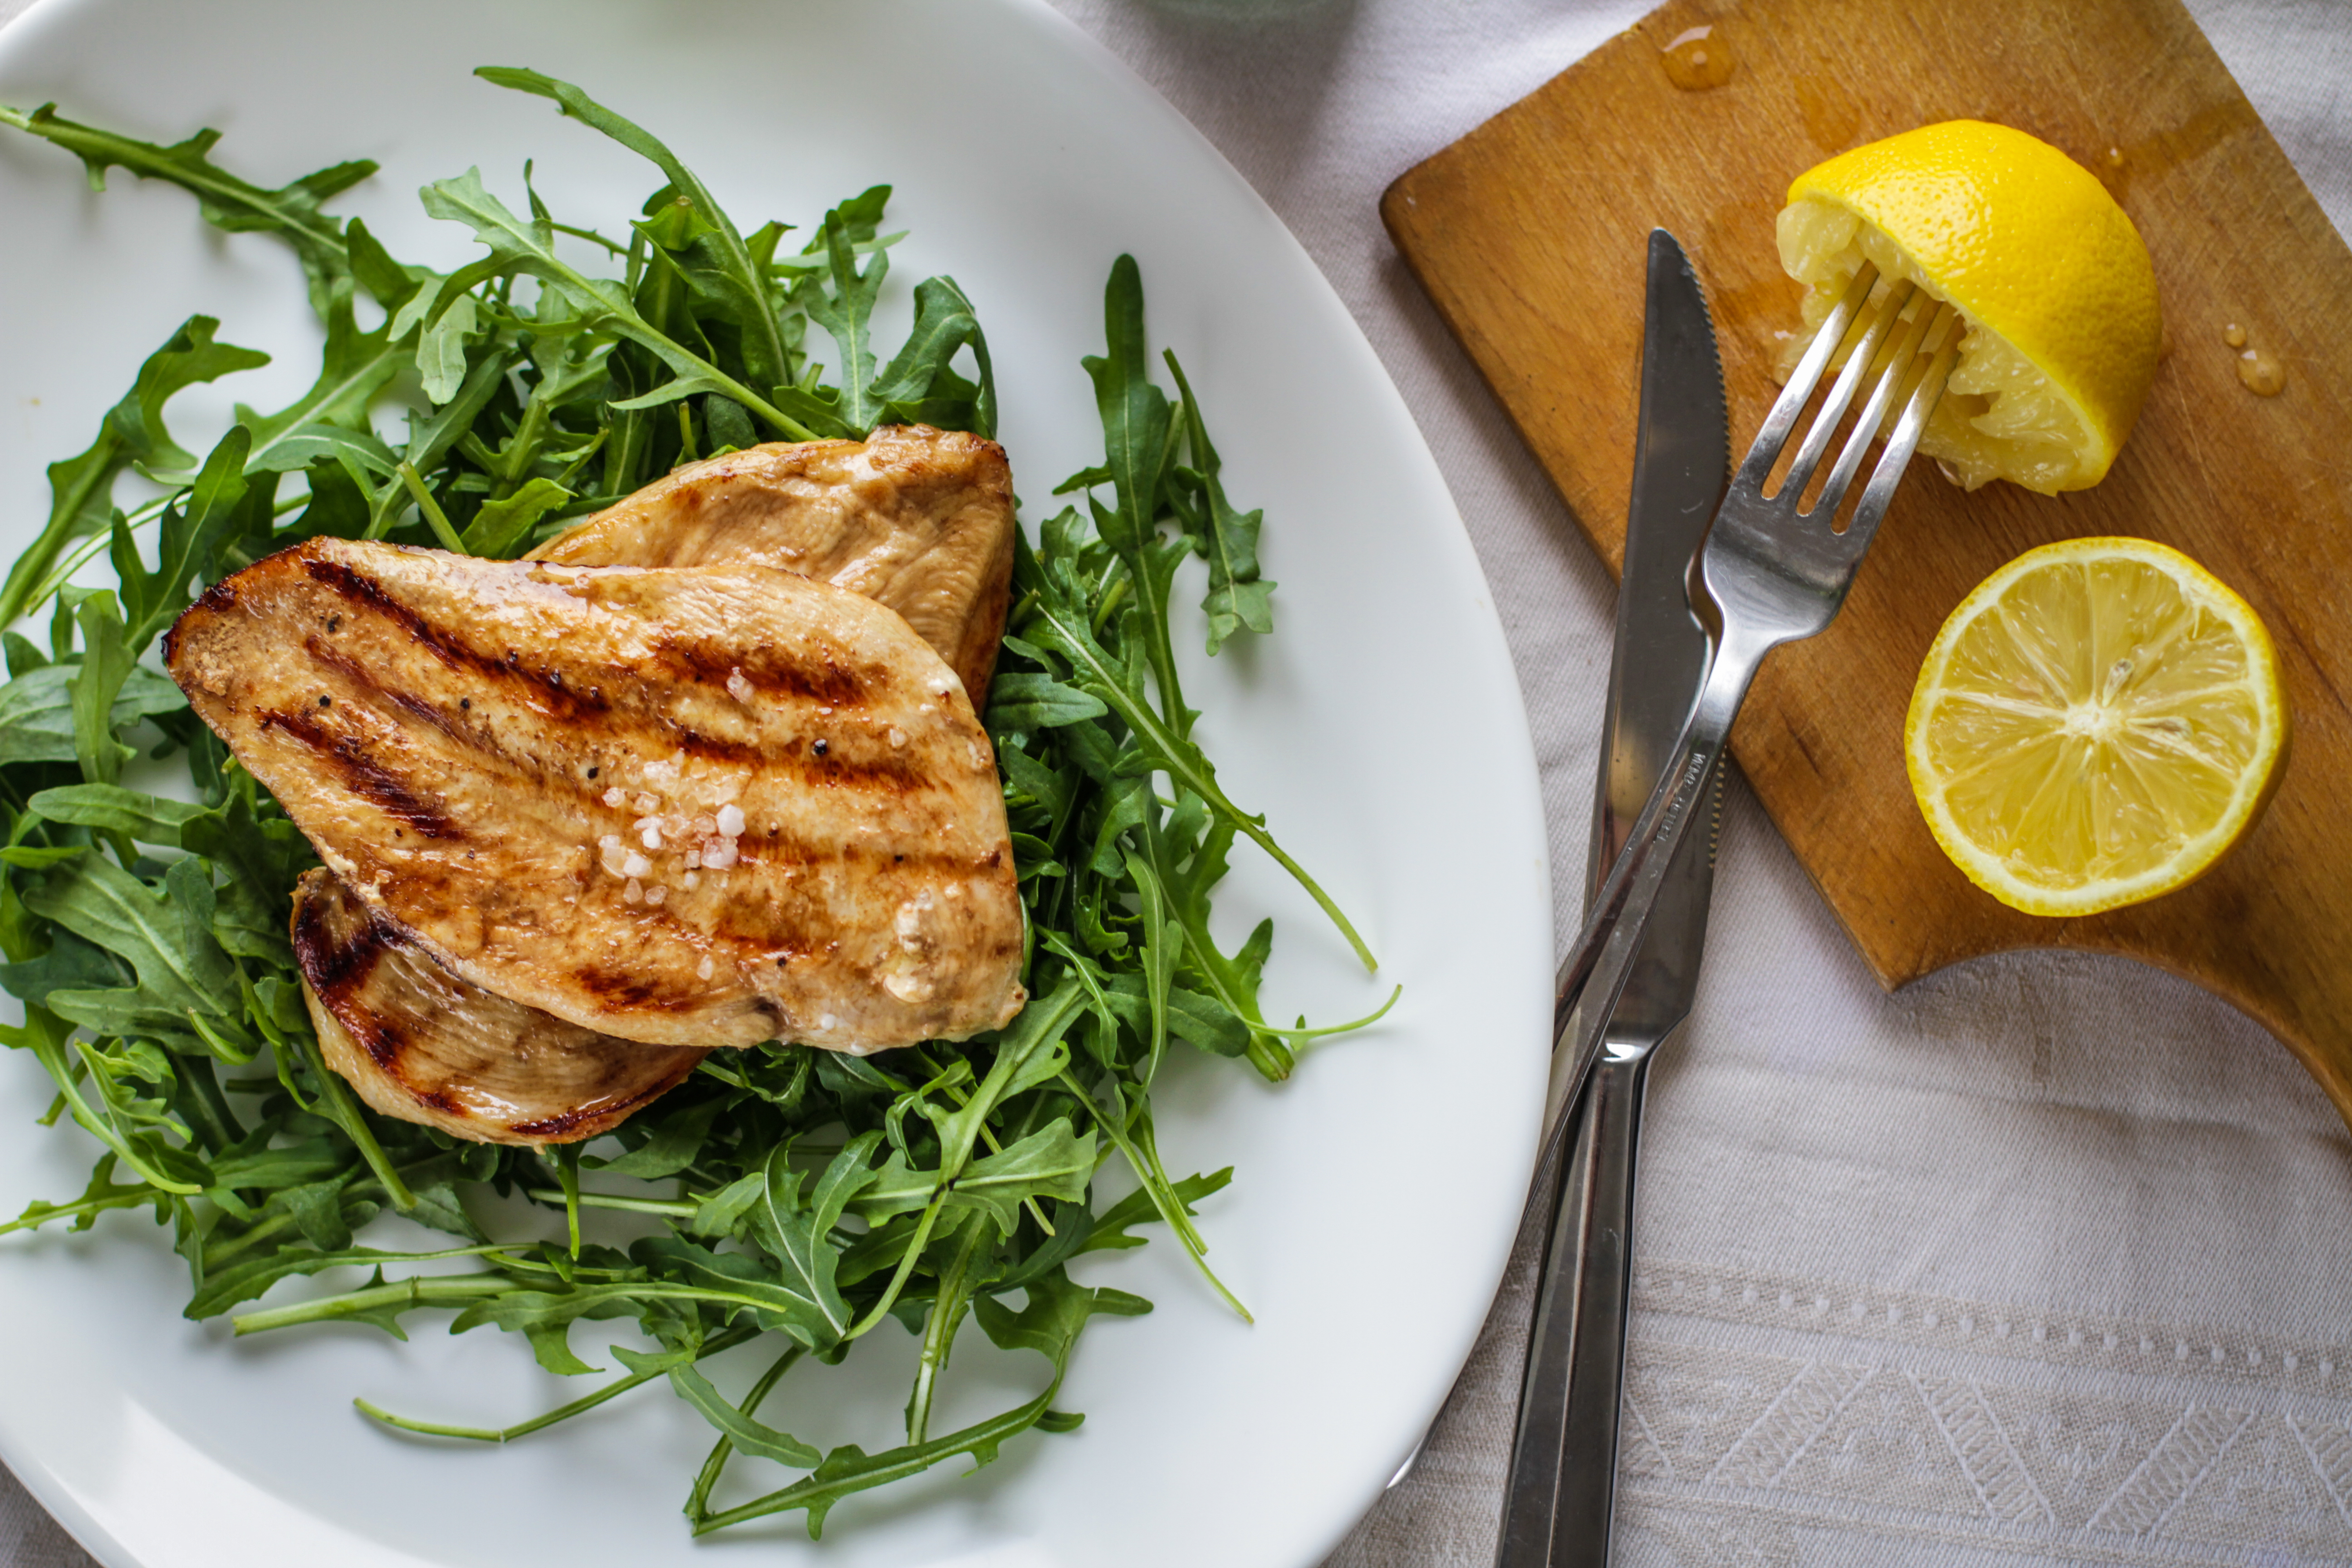 Chicken Is the Number One Cause of Foodborne Illness Outbreaks. Here's How to Stay Safe